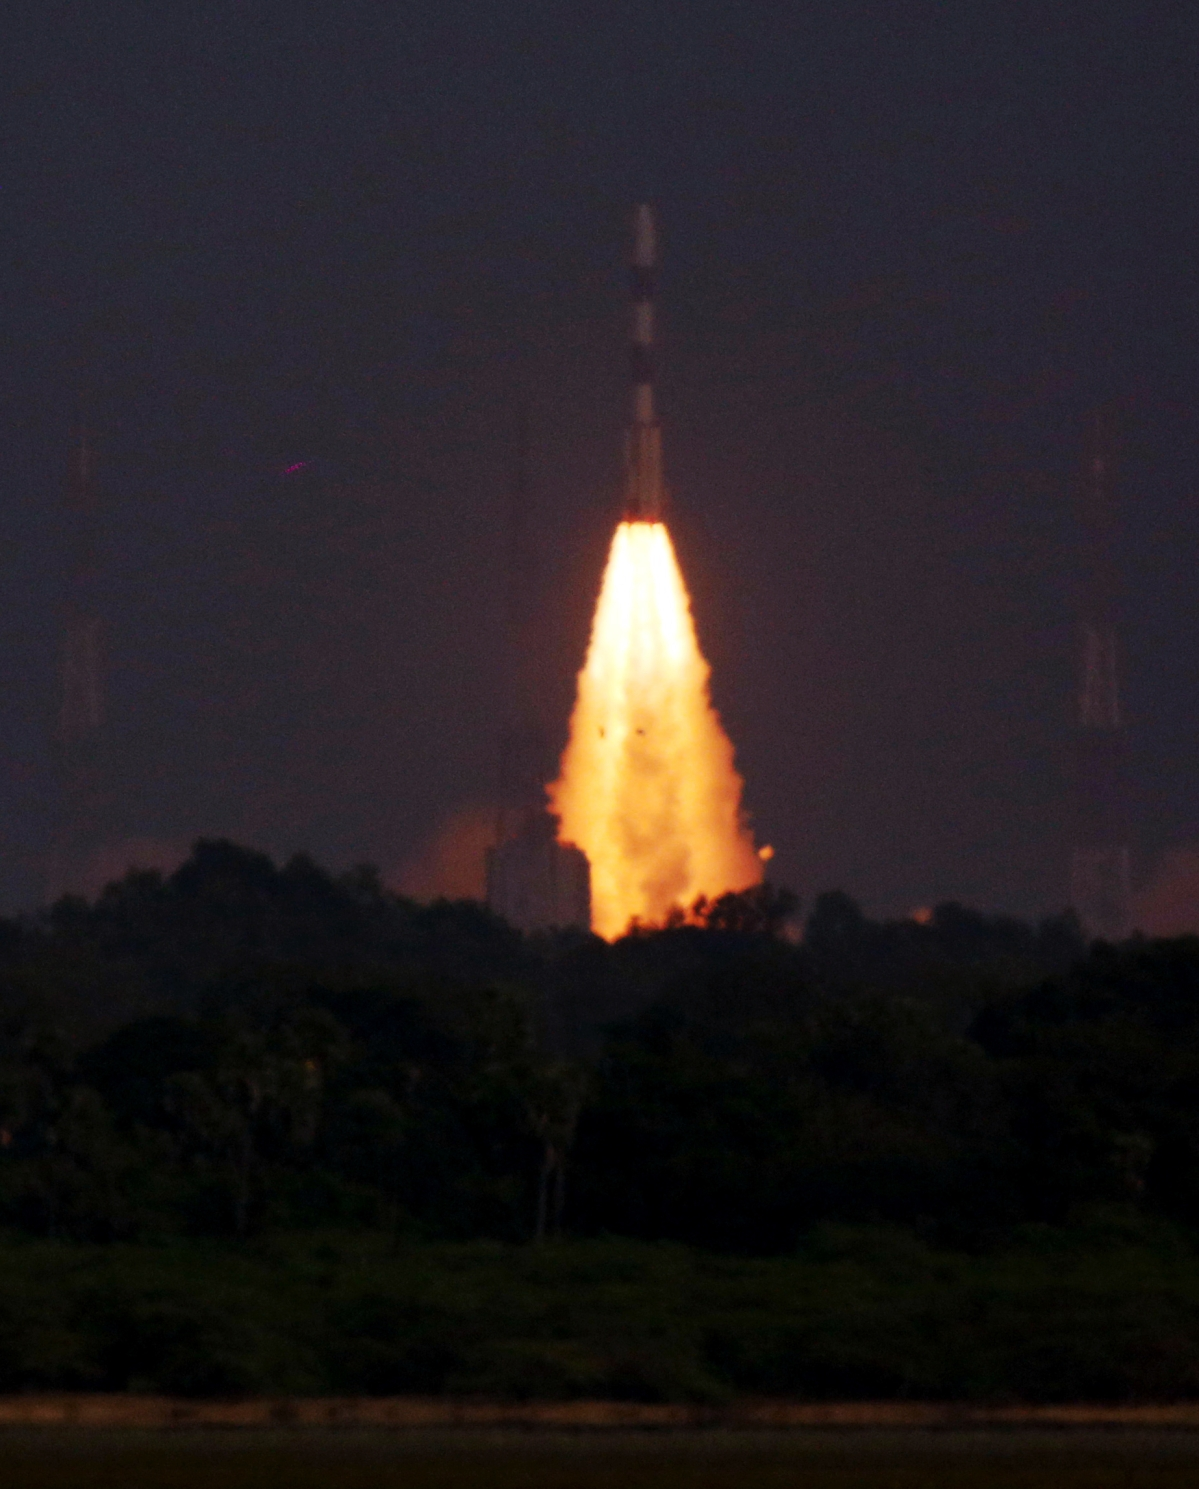 In Pics: PSLV rocket lifts-off with India's 42nd communication satellite CMS-01